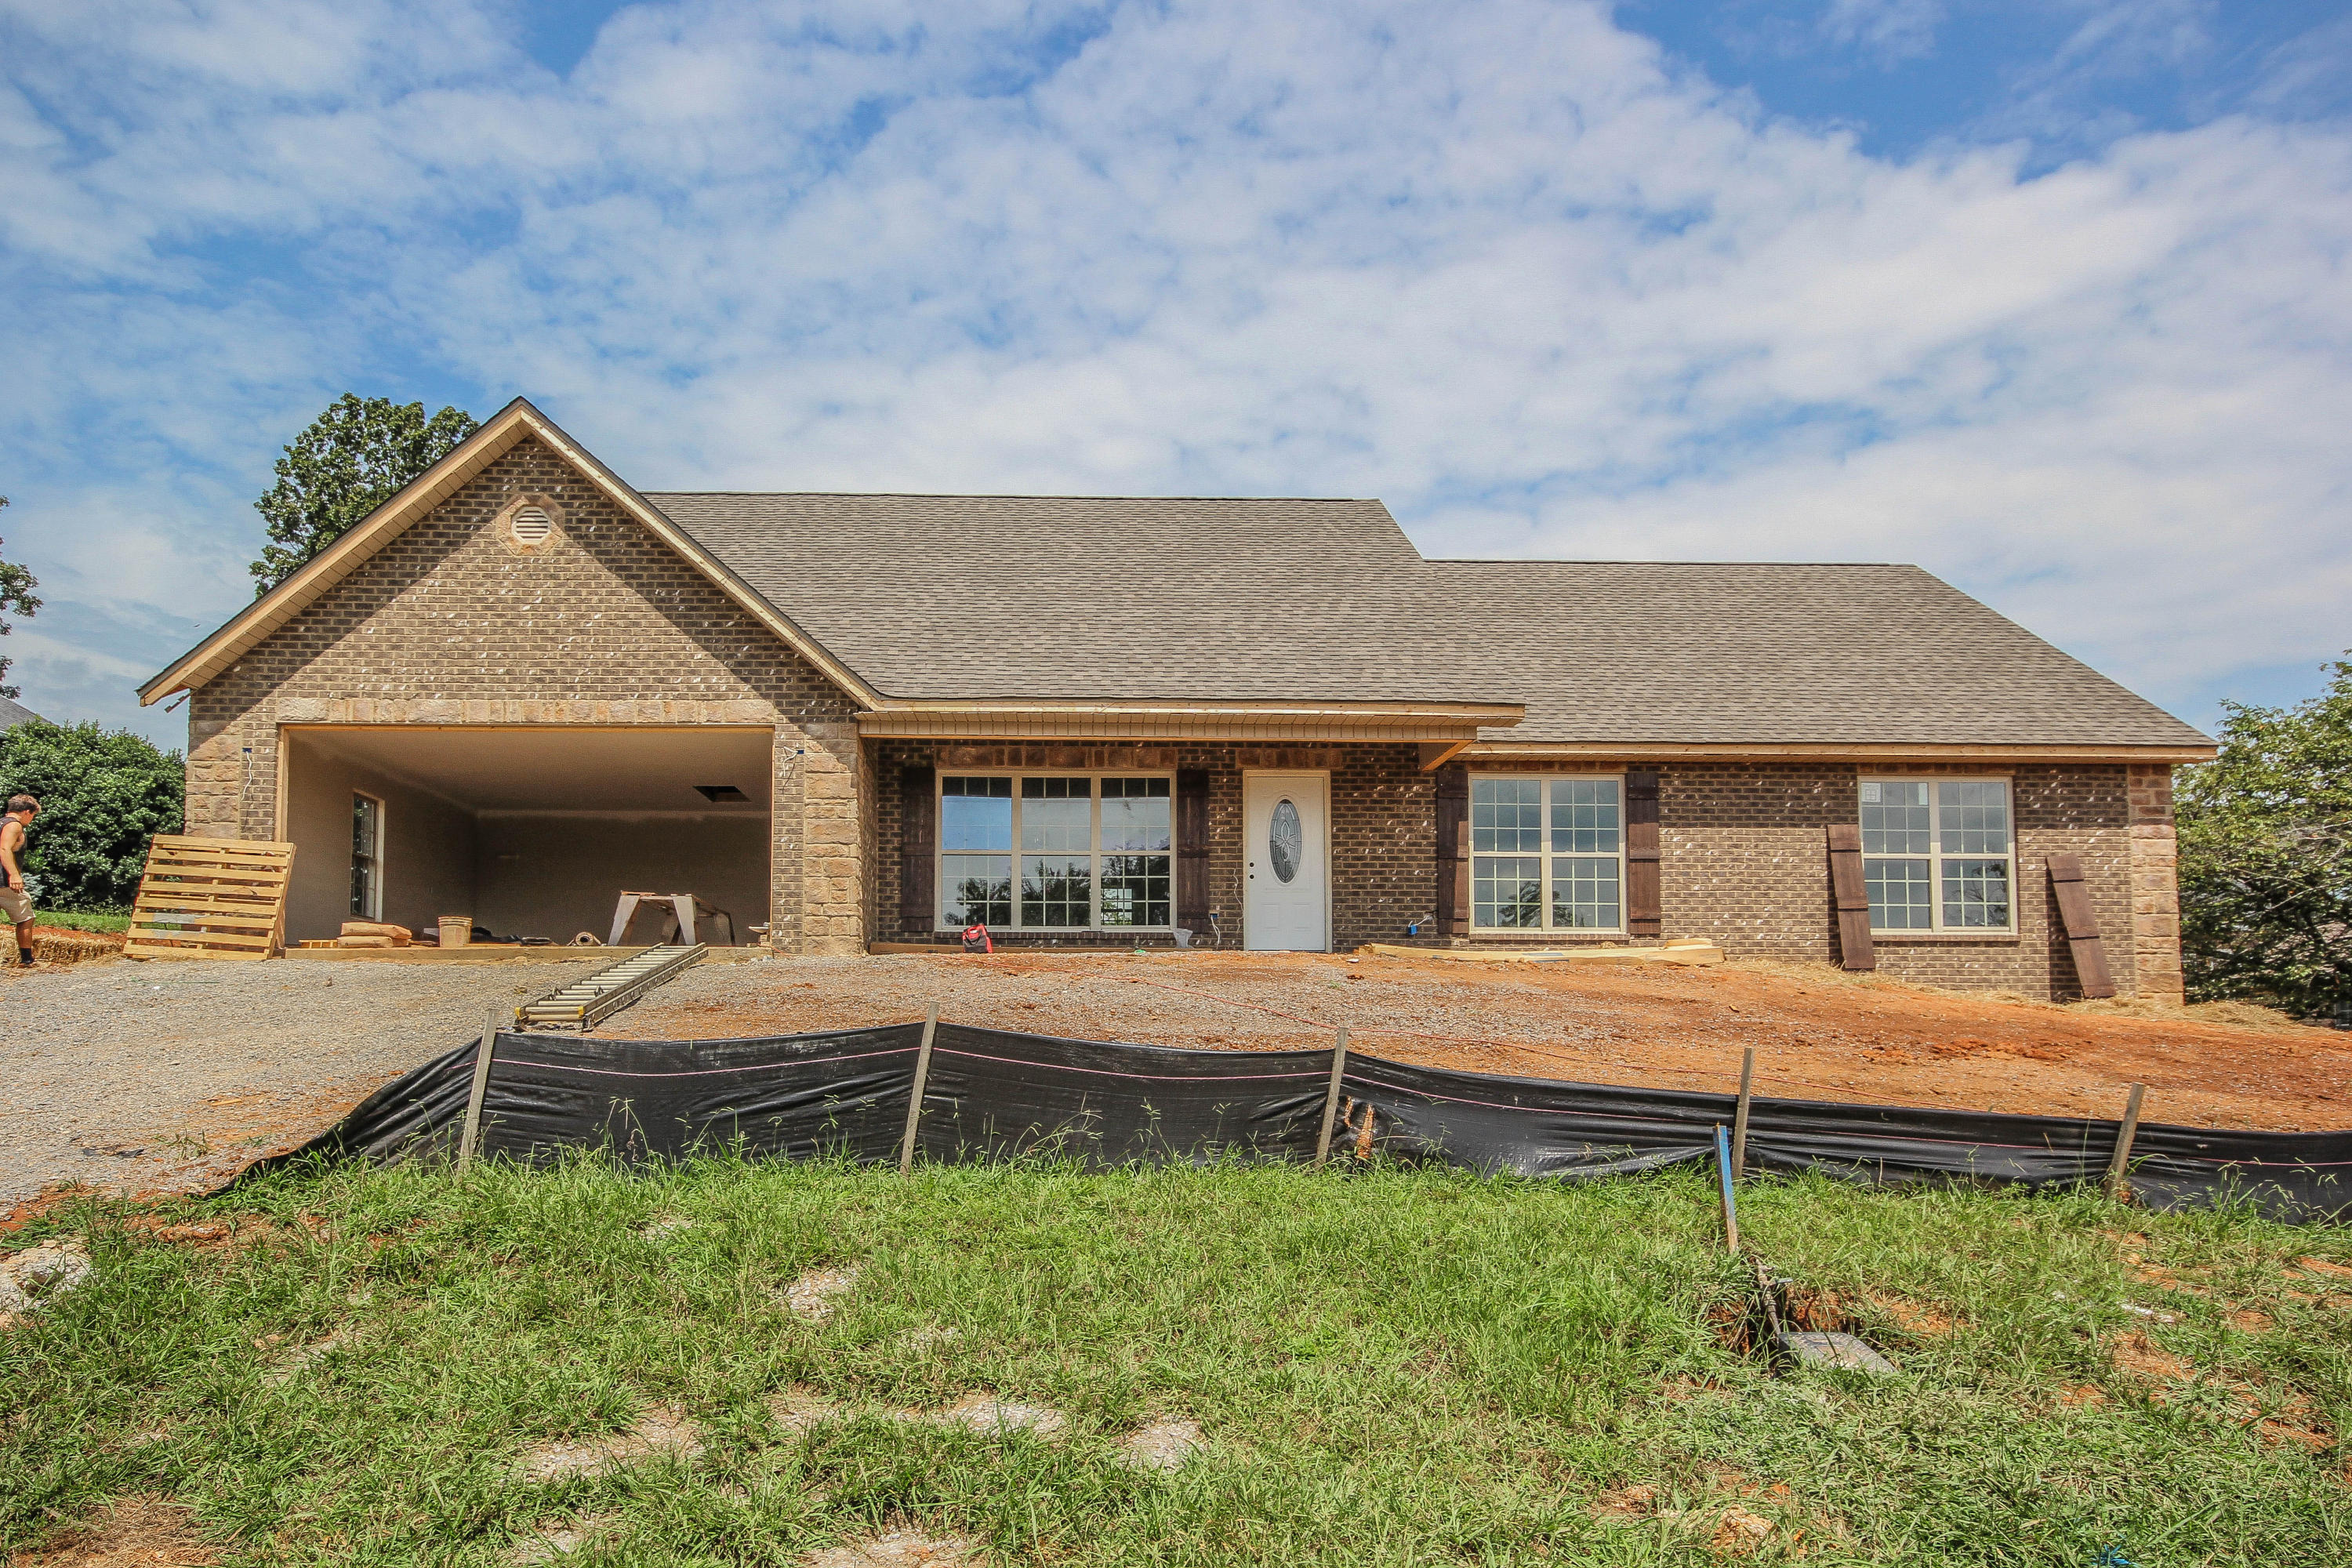 819 ROYAL VIEW DRIVE, MARYVILLE, TN 37801